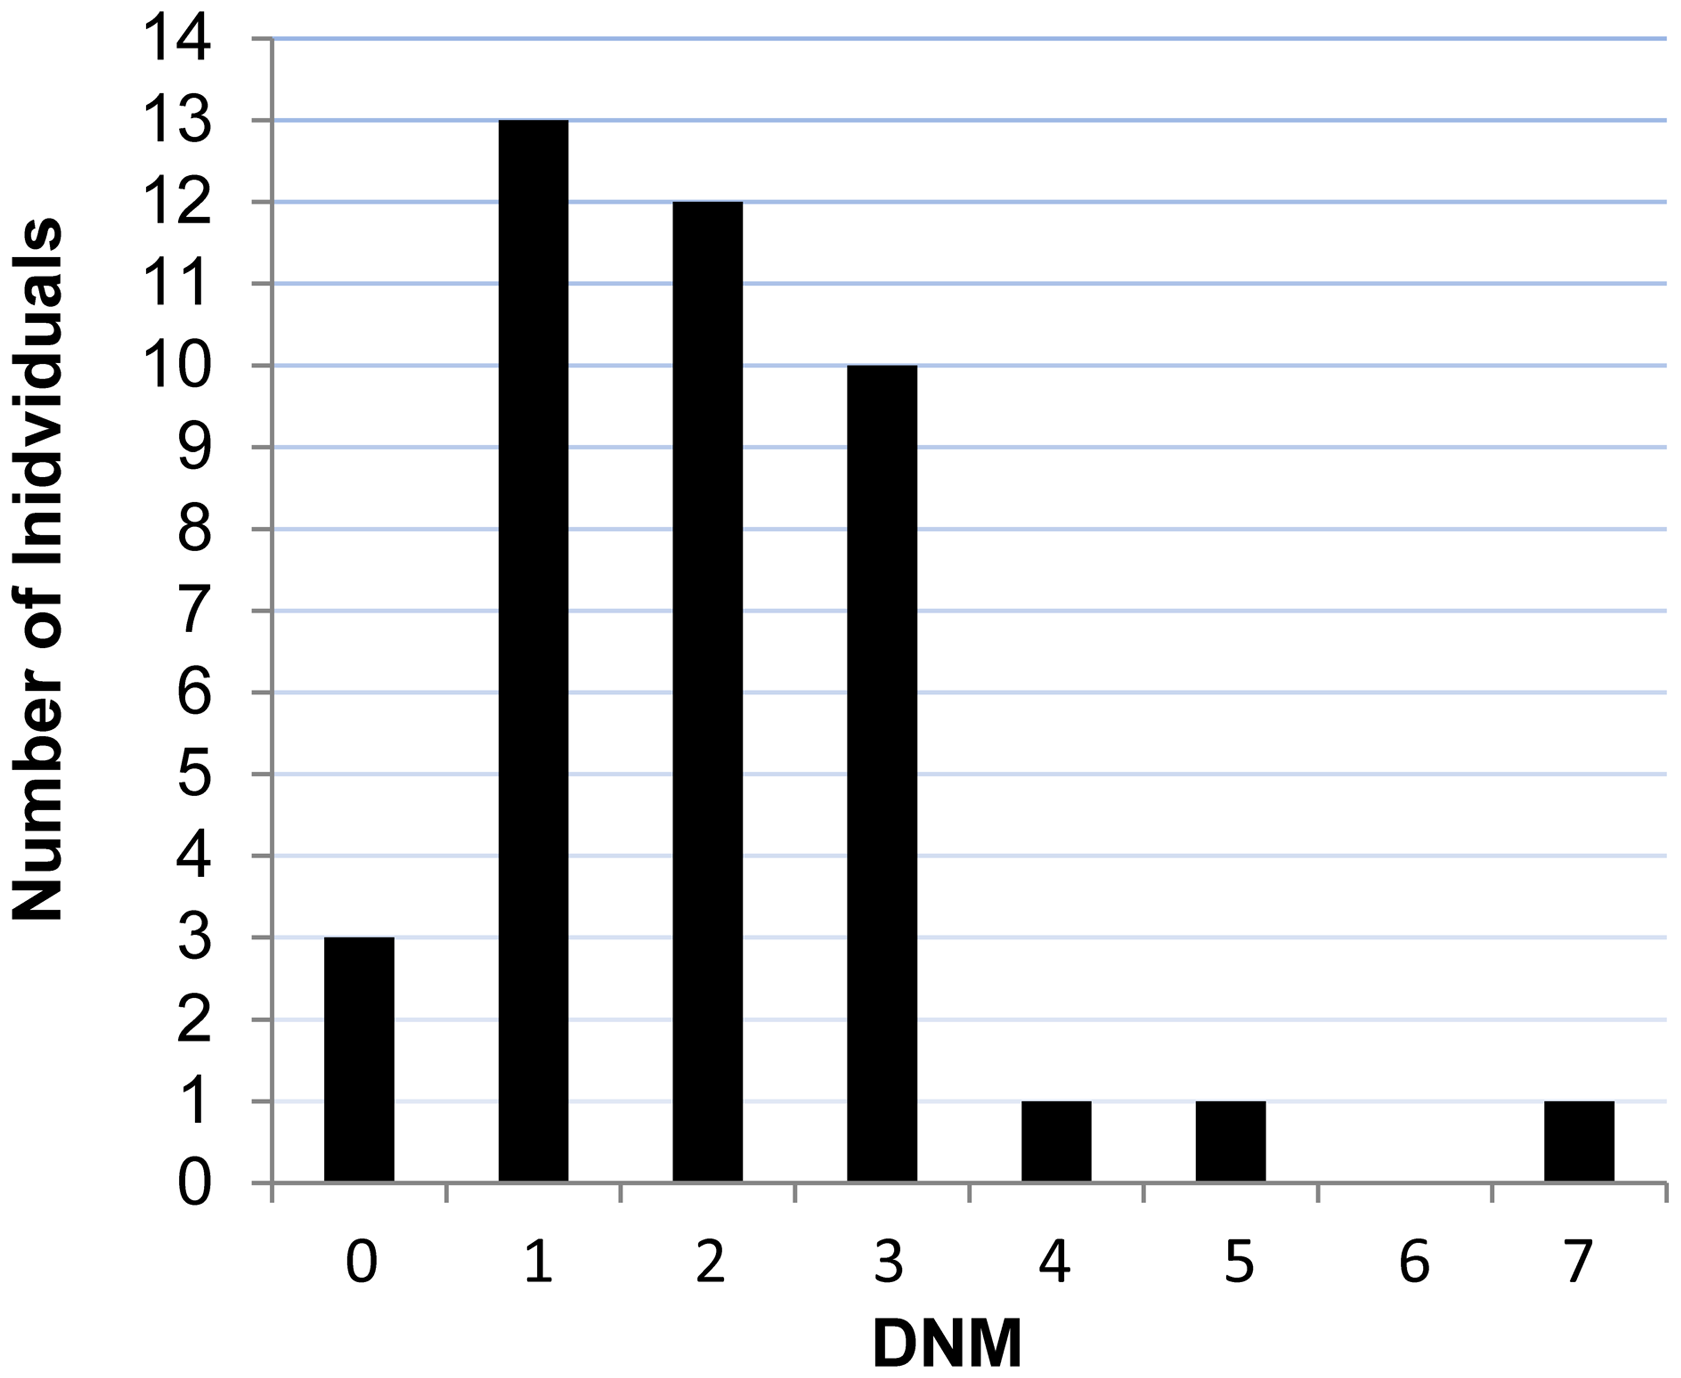 Number of DNMs per affected individual in each trio.